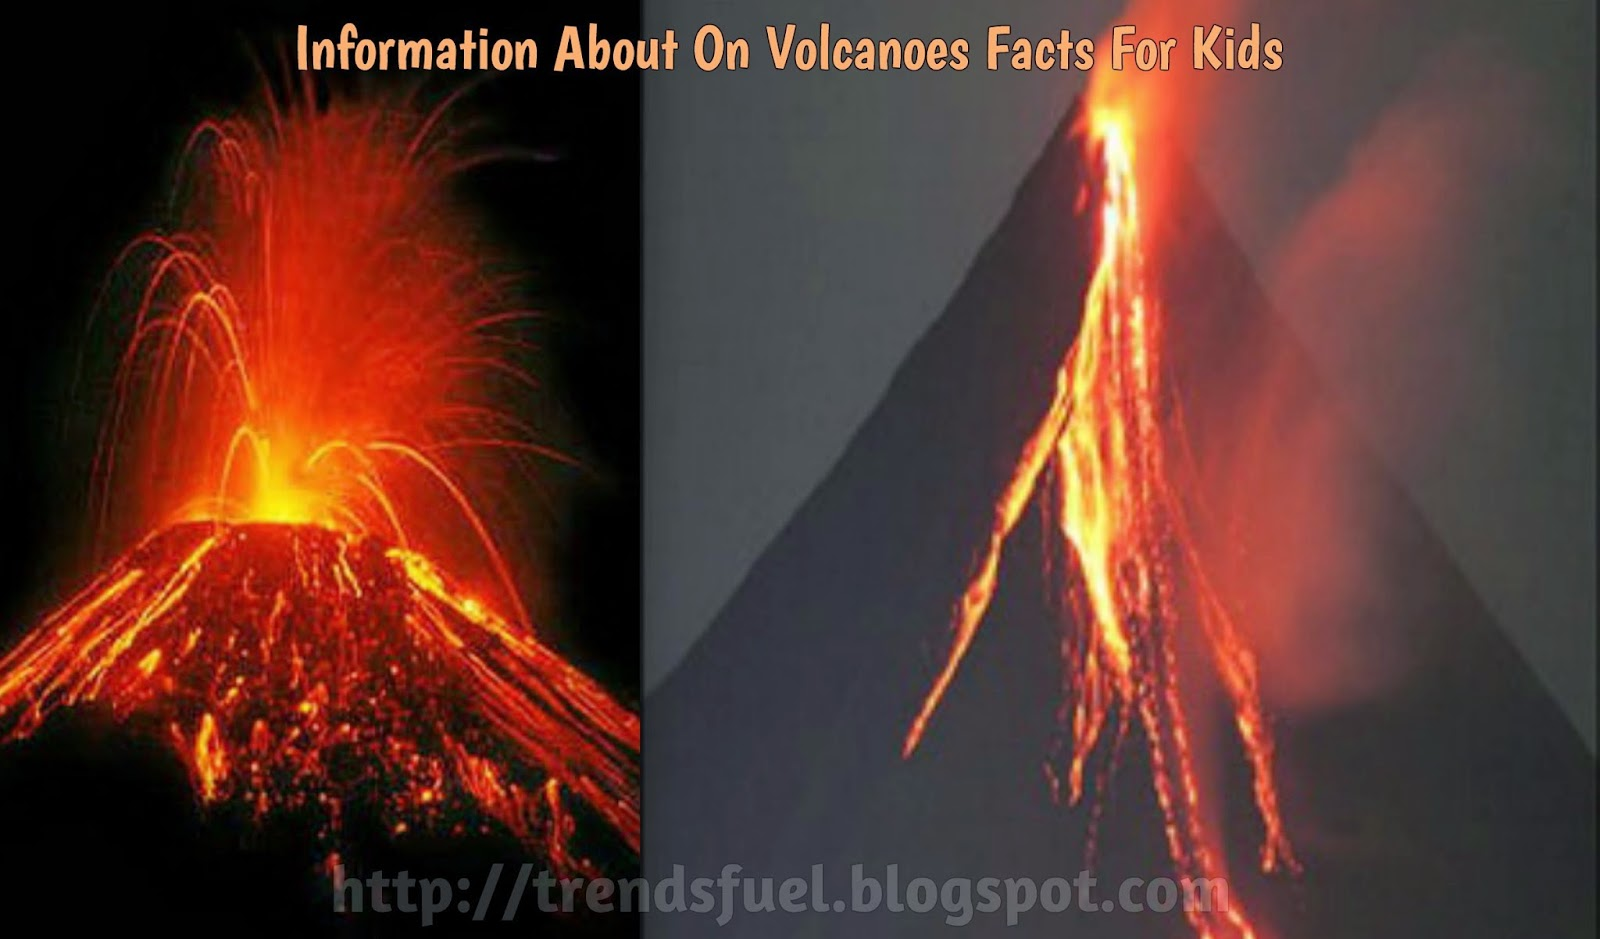 Find out facts for kids about volcanoes Get information about volcanoes and discover interesting facts with DK Find Out to help kids learn